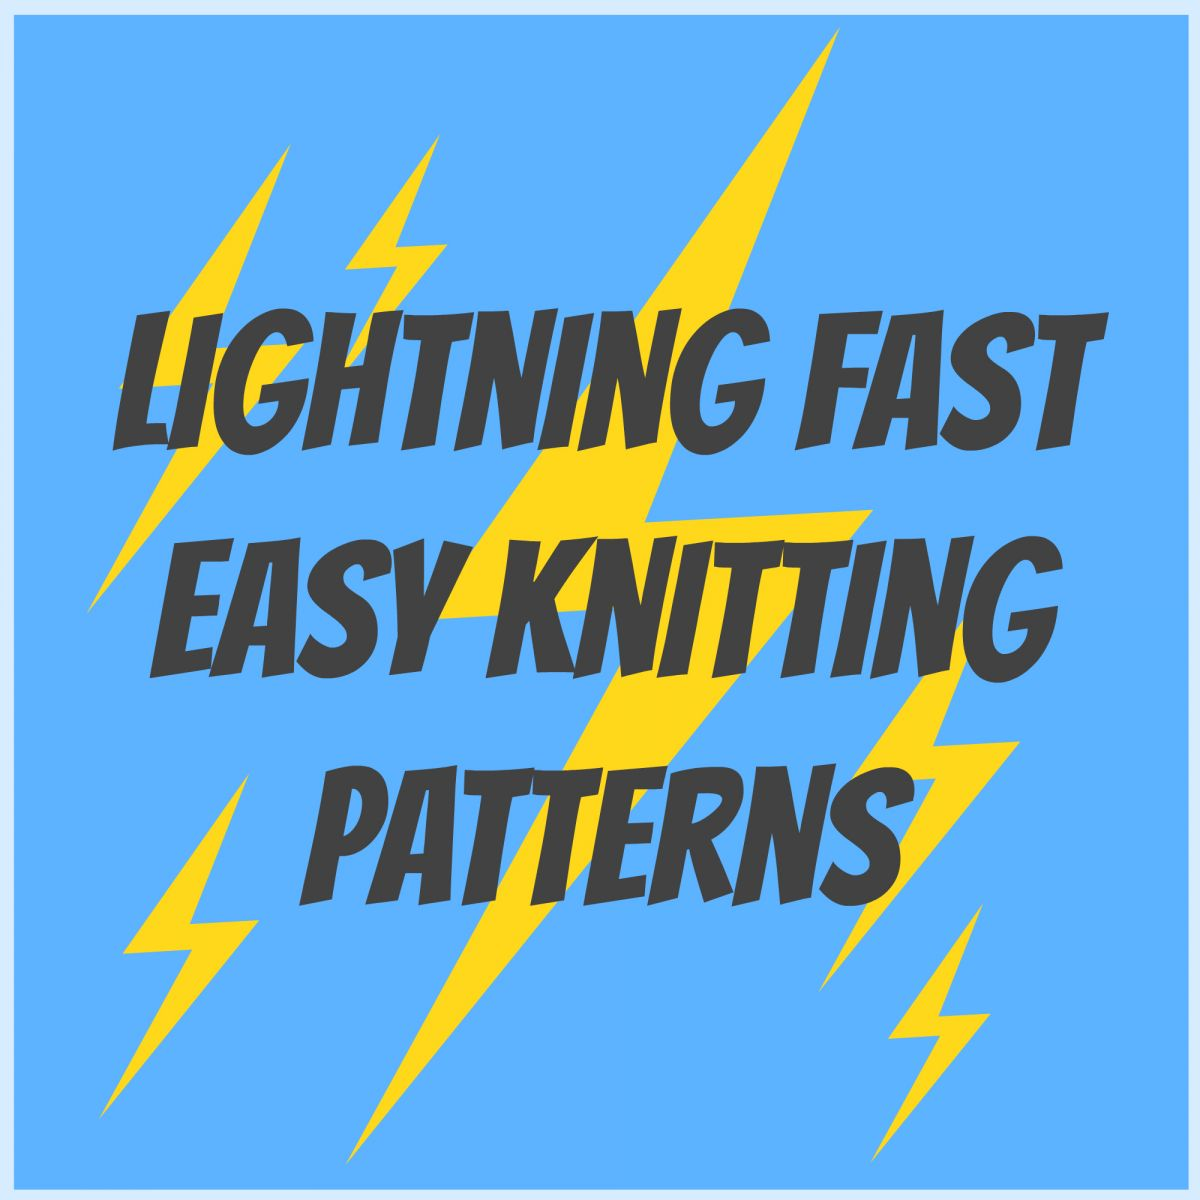 8 lightning fast easy knitting patterns allfreeknitting 8 lightning fast easy knitting patterns bankloansurffo Gallery